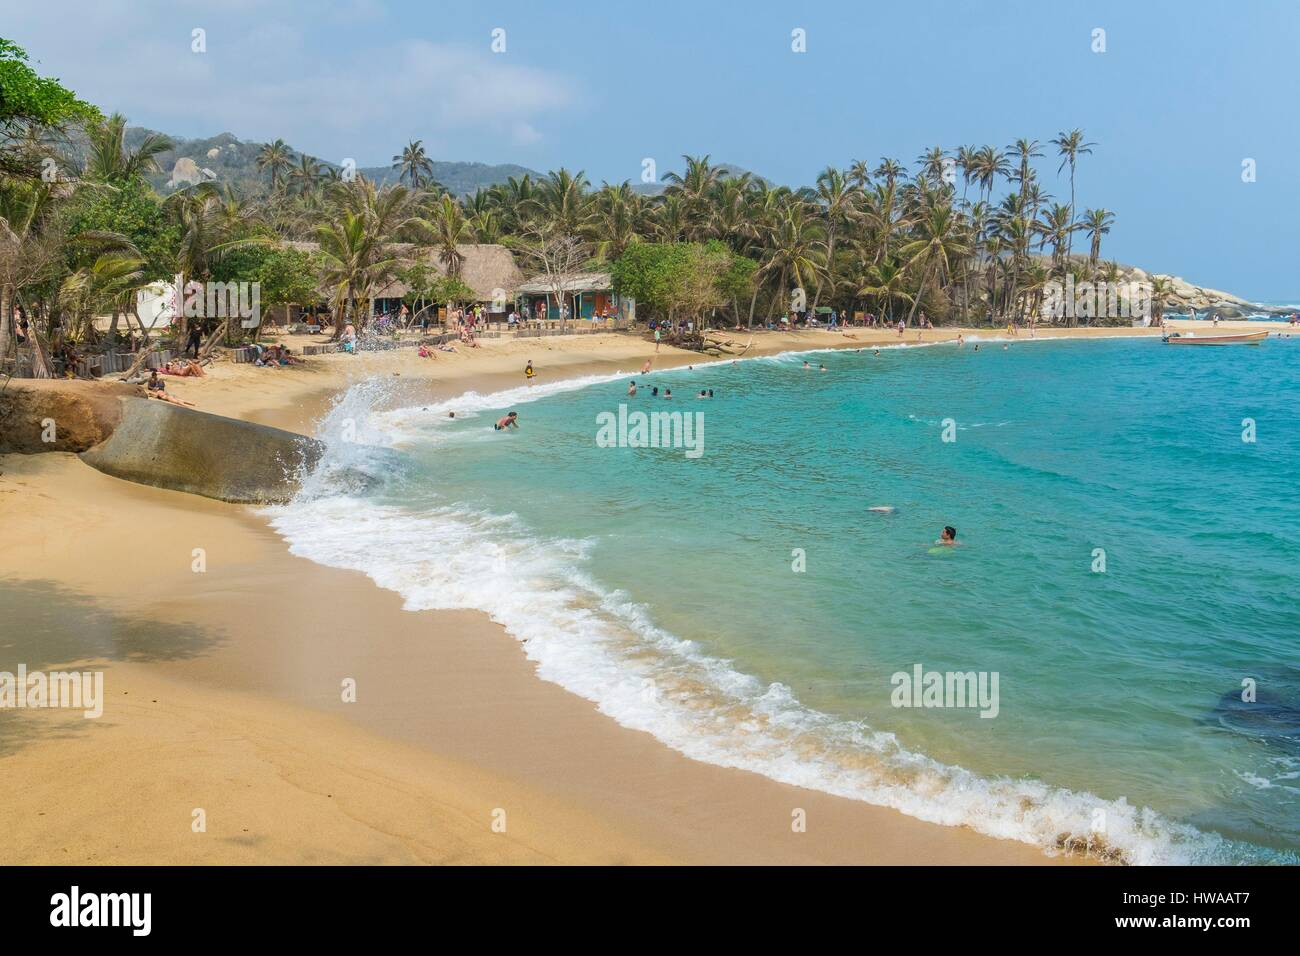 Colombia, Magdalena department, Tayrona National Park (Parque Nacional Tayrona) founded in 1969, the beach in Cabo - Stock Image